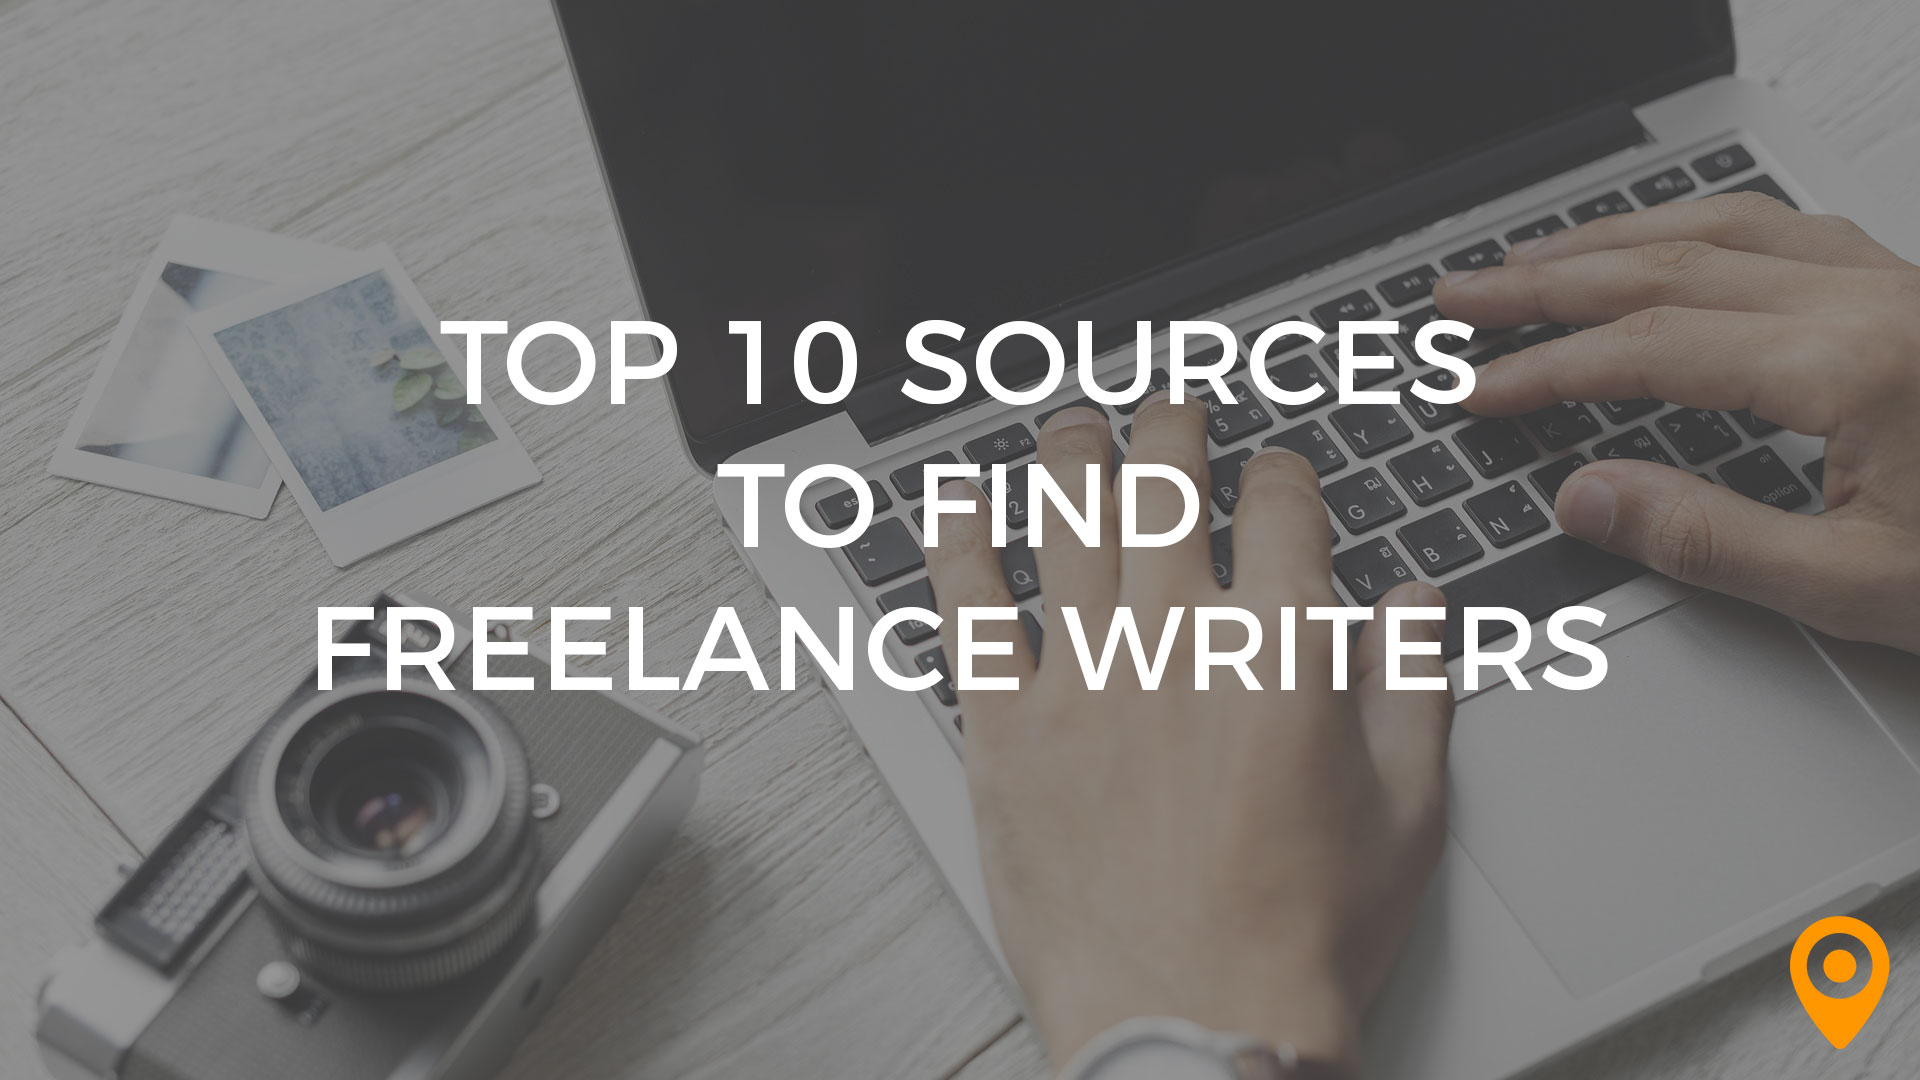 10 sources to find freelance writers